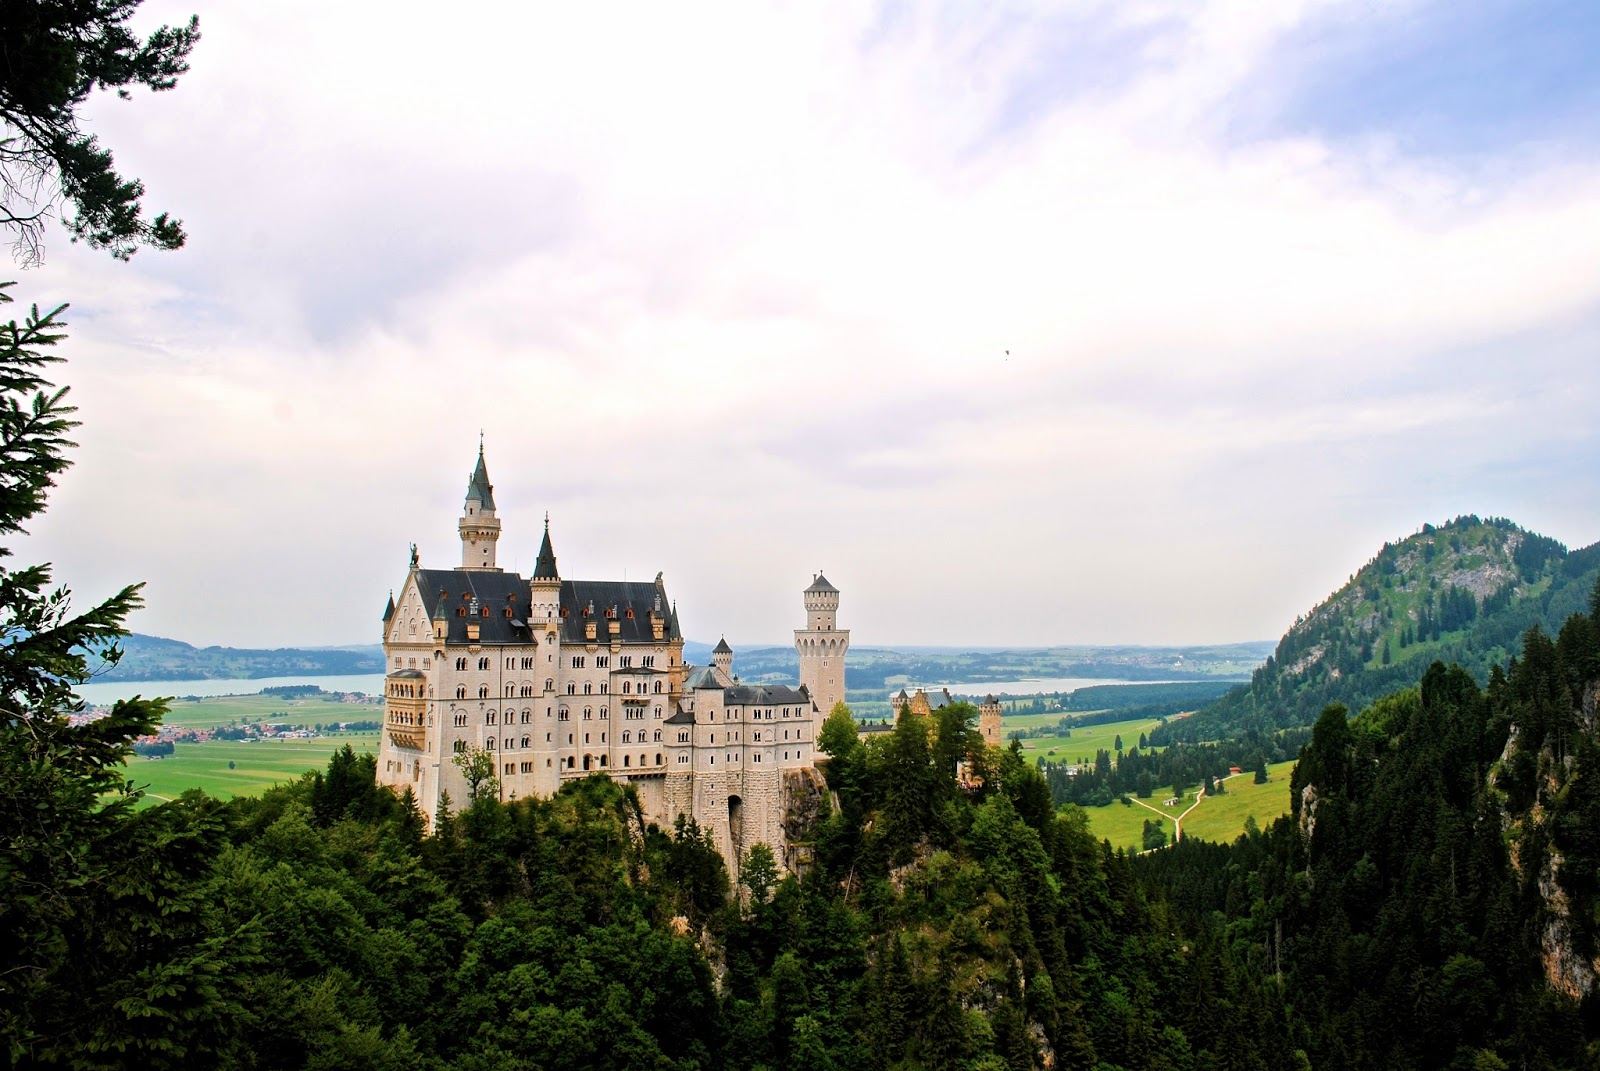 View of Neuschwanstein Castle from a nearby bridge on day trip with Viator